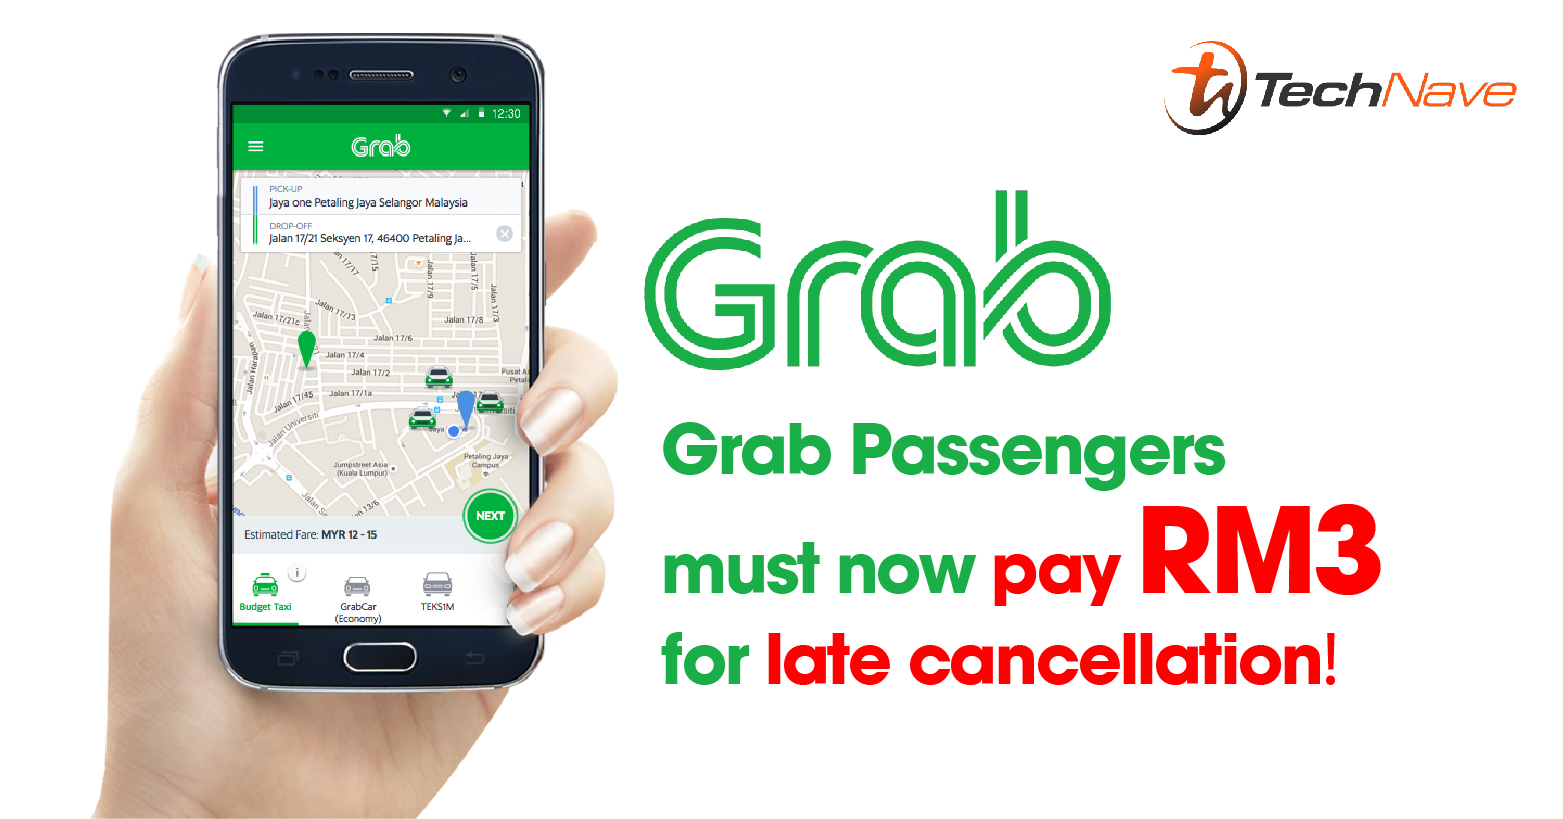 Grab Passengers must now pay RM3 for late cancellation and